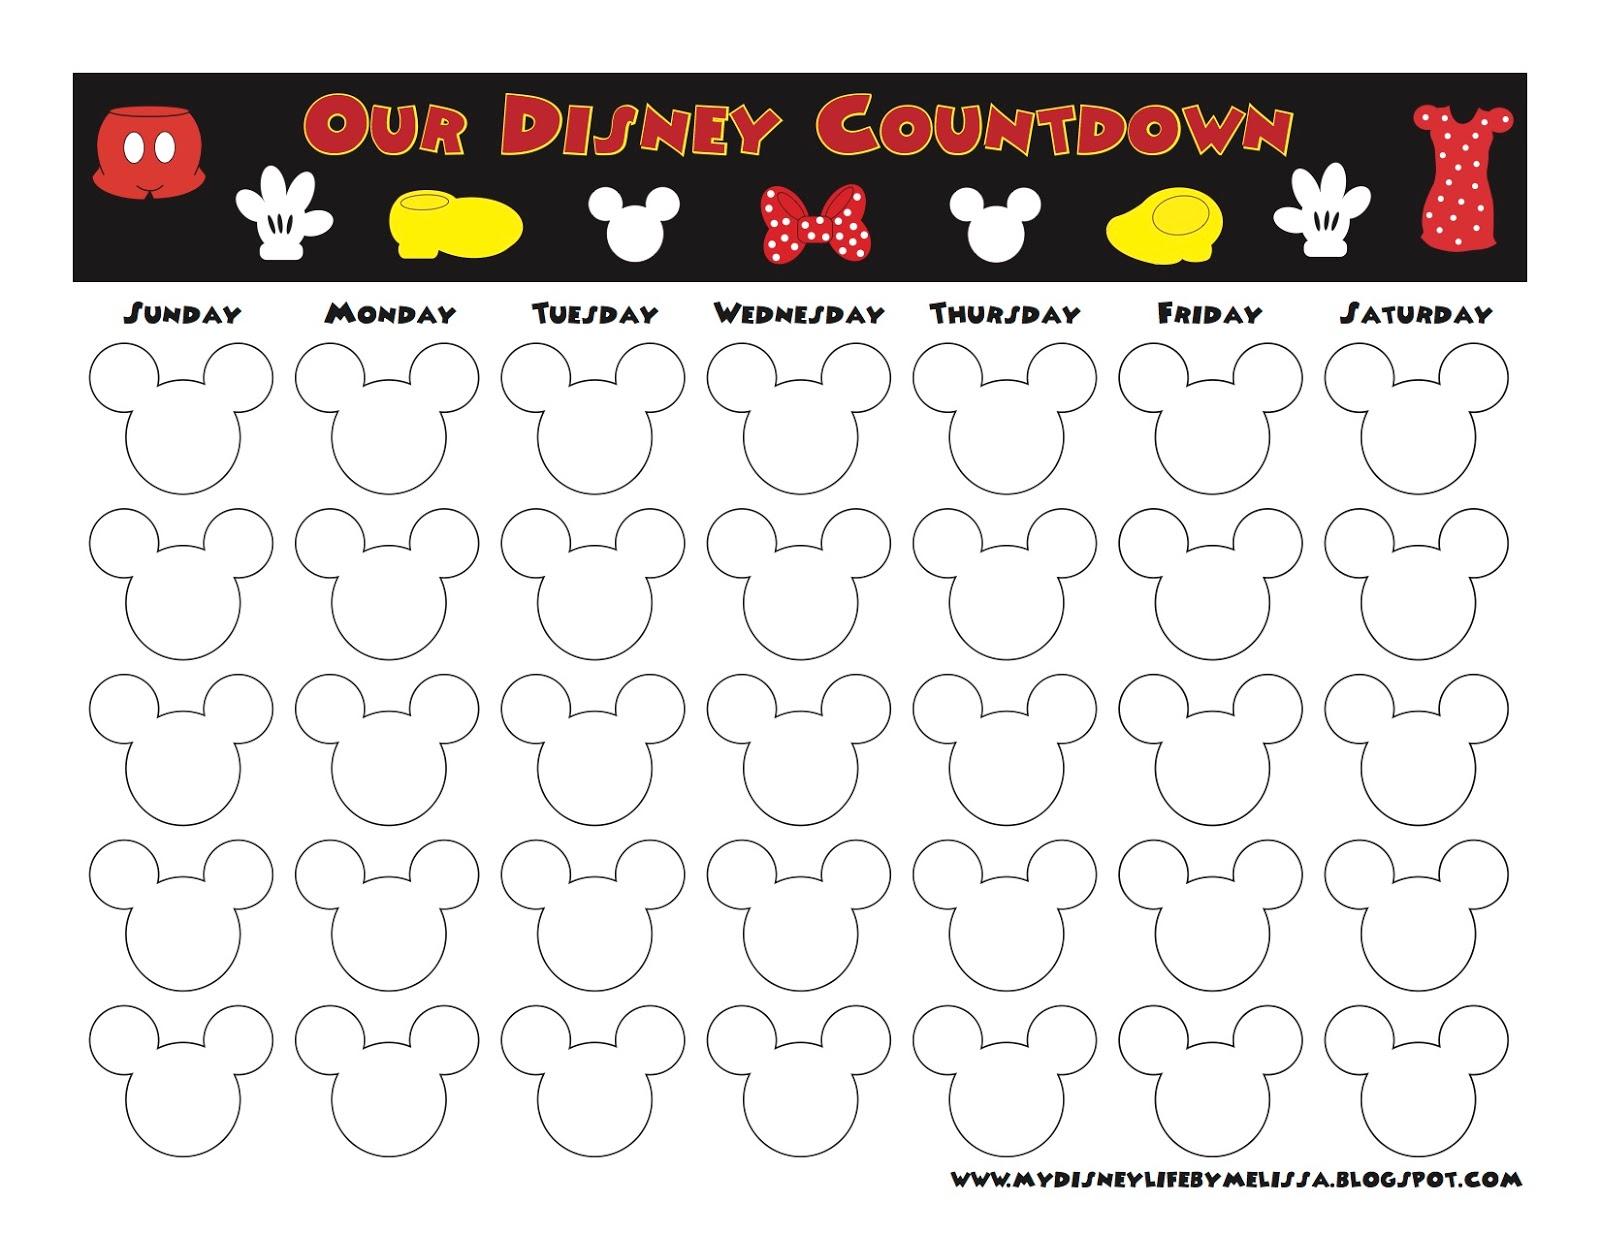 image about Disney Printable Calendar identified as My Disney Daily life: Countdown Calendars